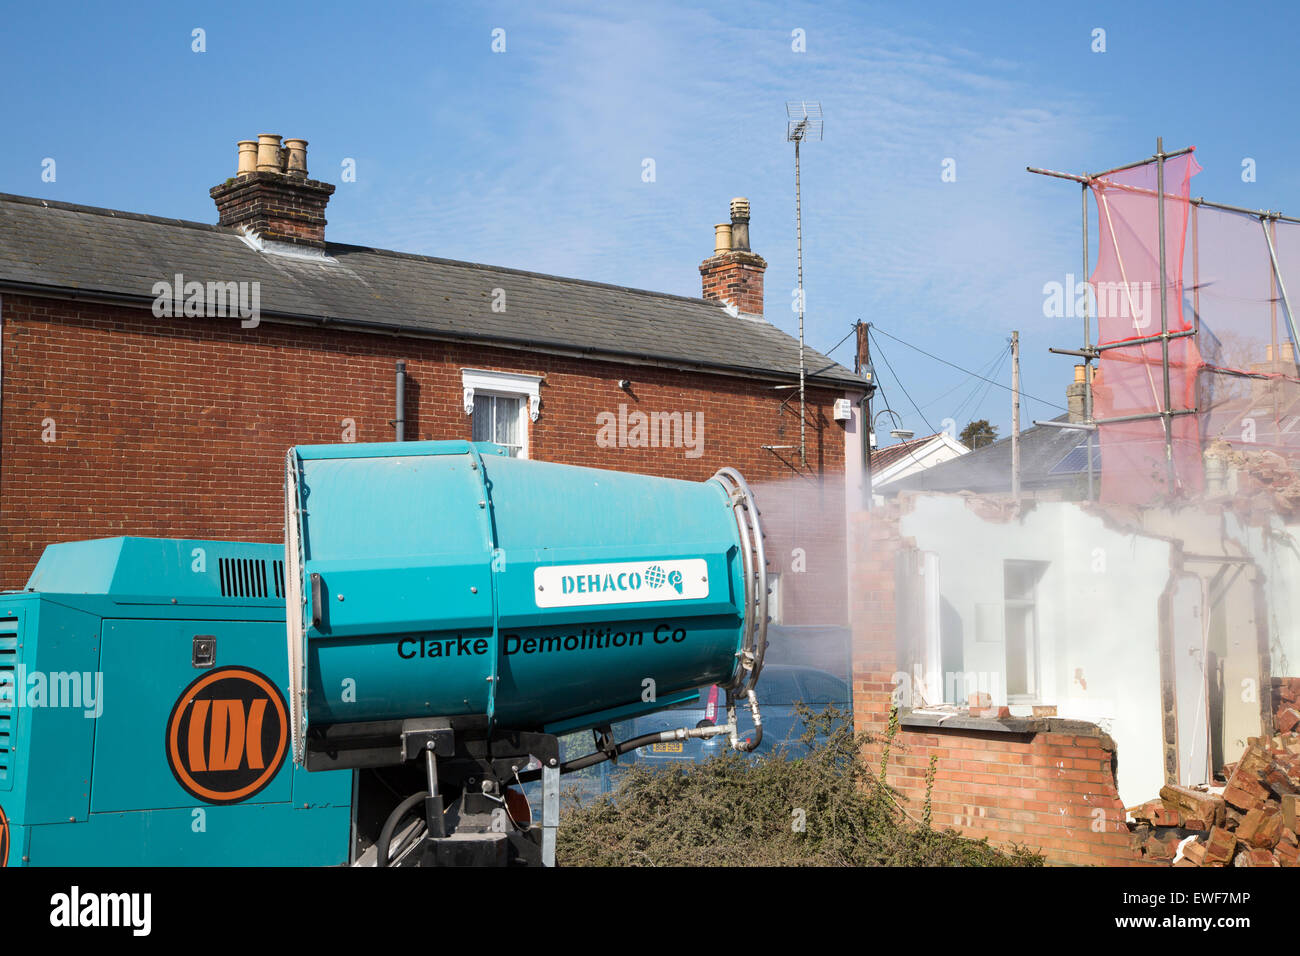 Dehaco water cannon sprayer dampening dust at a demolition site, Woodbridge, Suffolk, England, UK - Stock Image